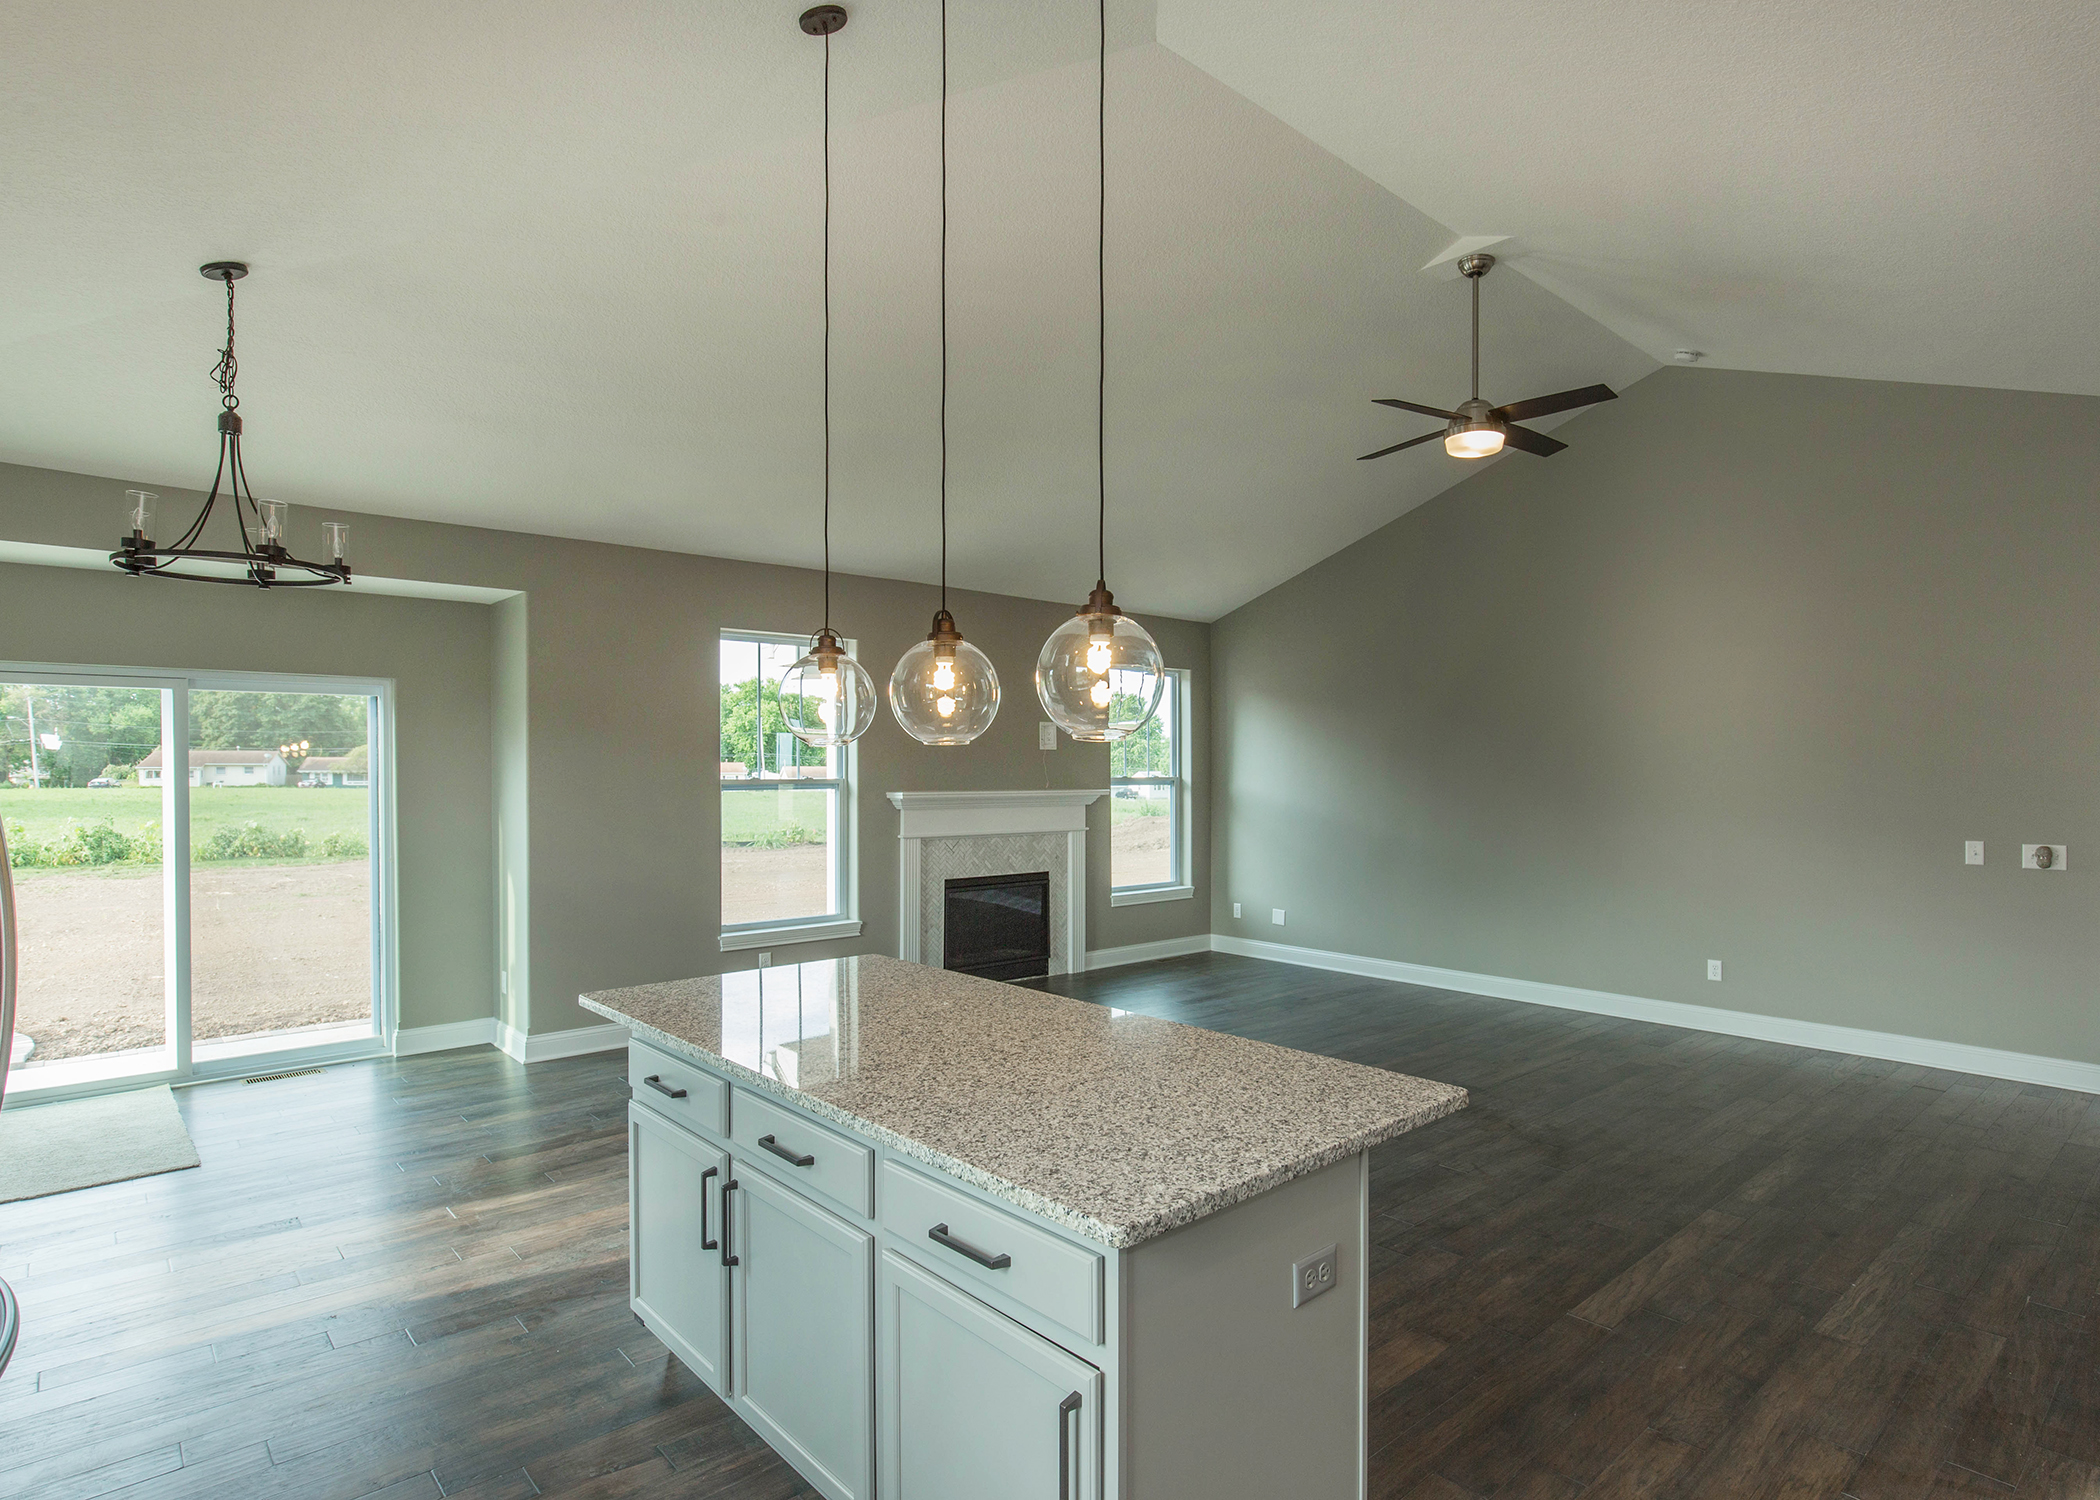 Decorating an Open Concept Floor Plan - Silverthorne ... on virtual room great floor plan, furniture store floor plan, decorating small open floor plan, decorating an open family room floor plan, decorating with open floor plan,